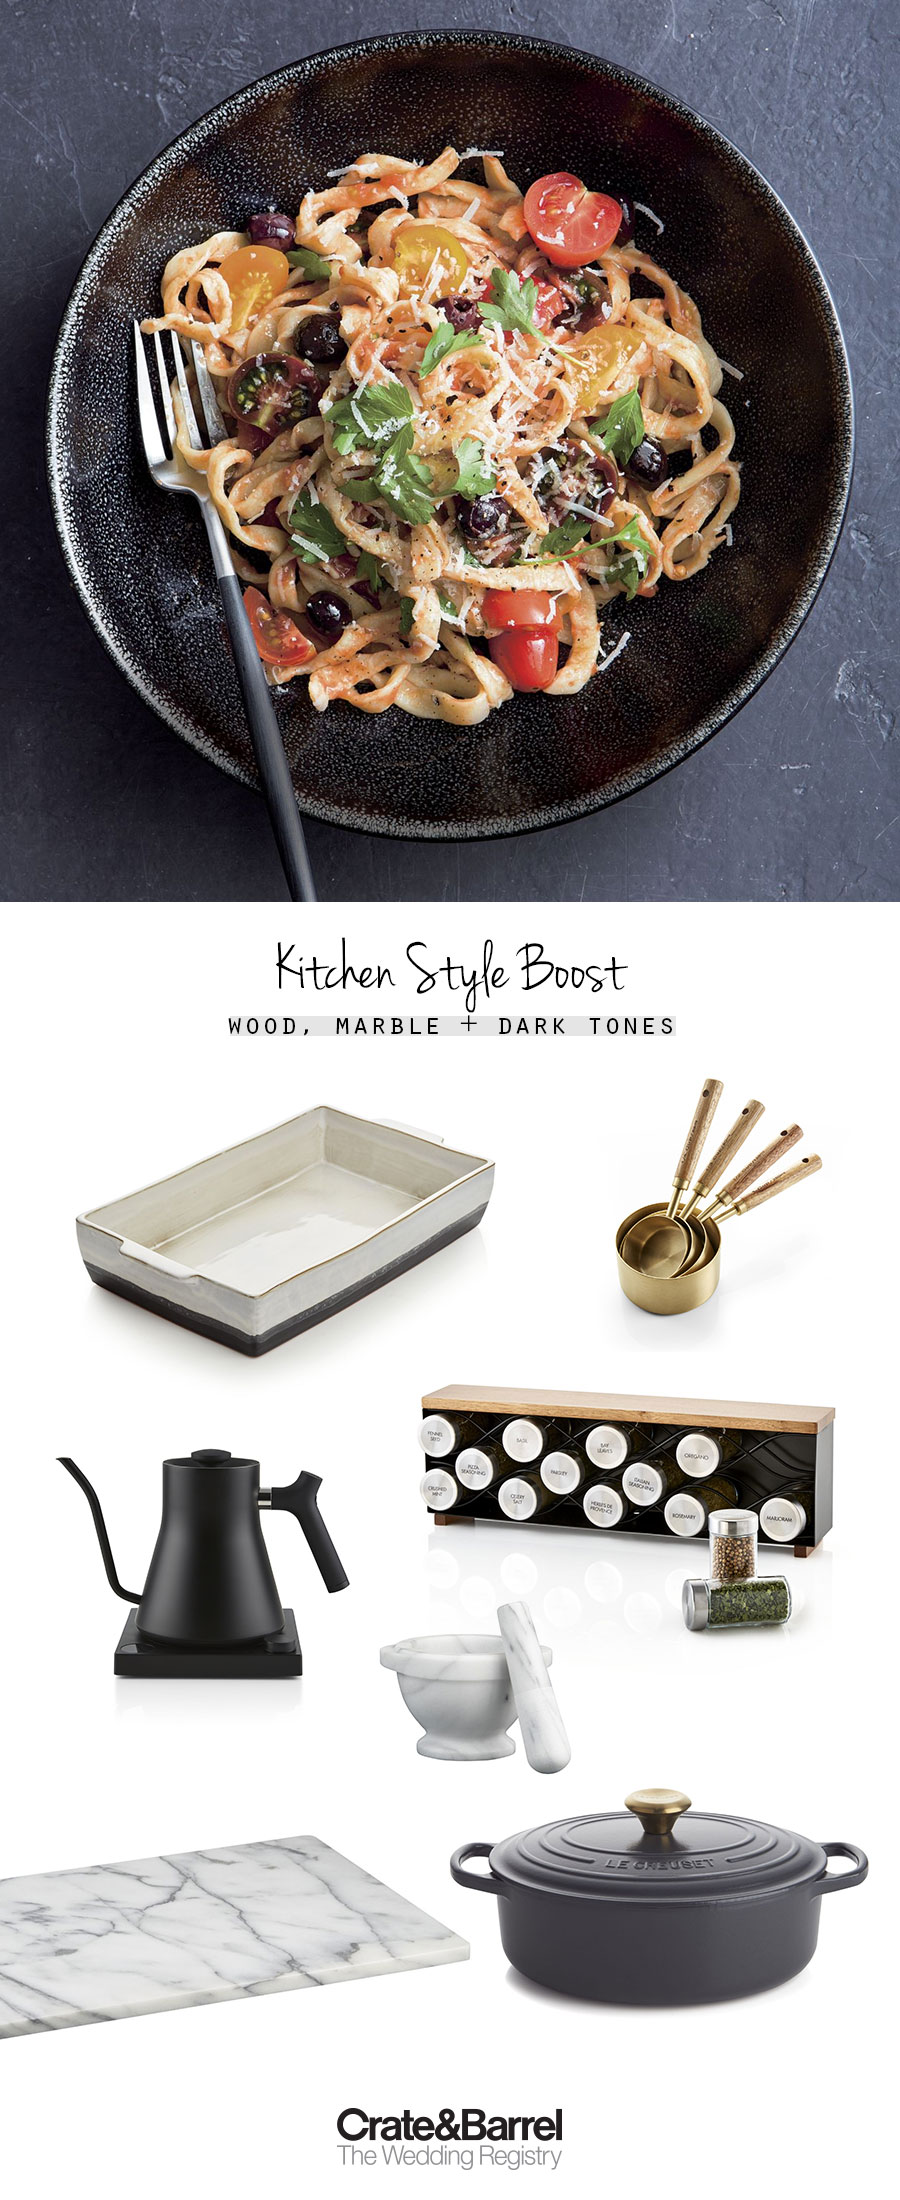 crate and barrel the wedding registry wood marble matt black cafe style kitchen picks